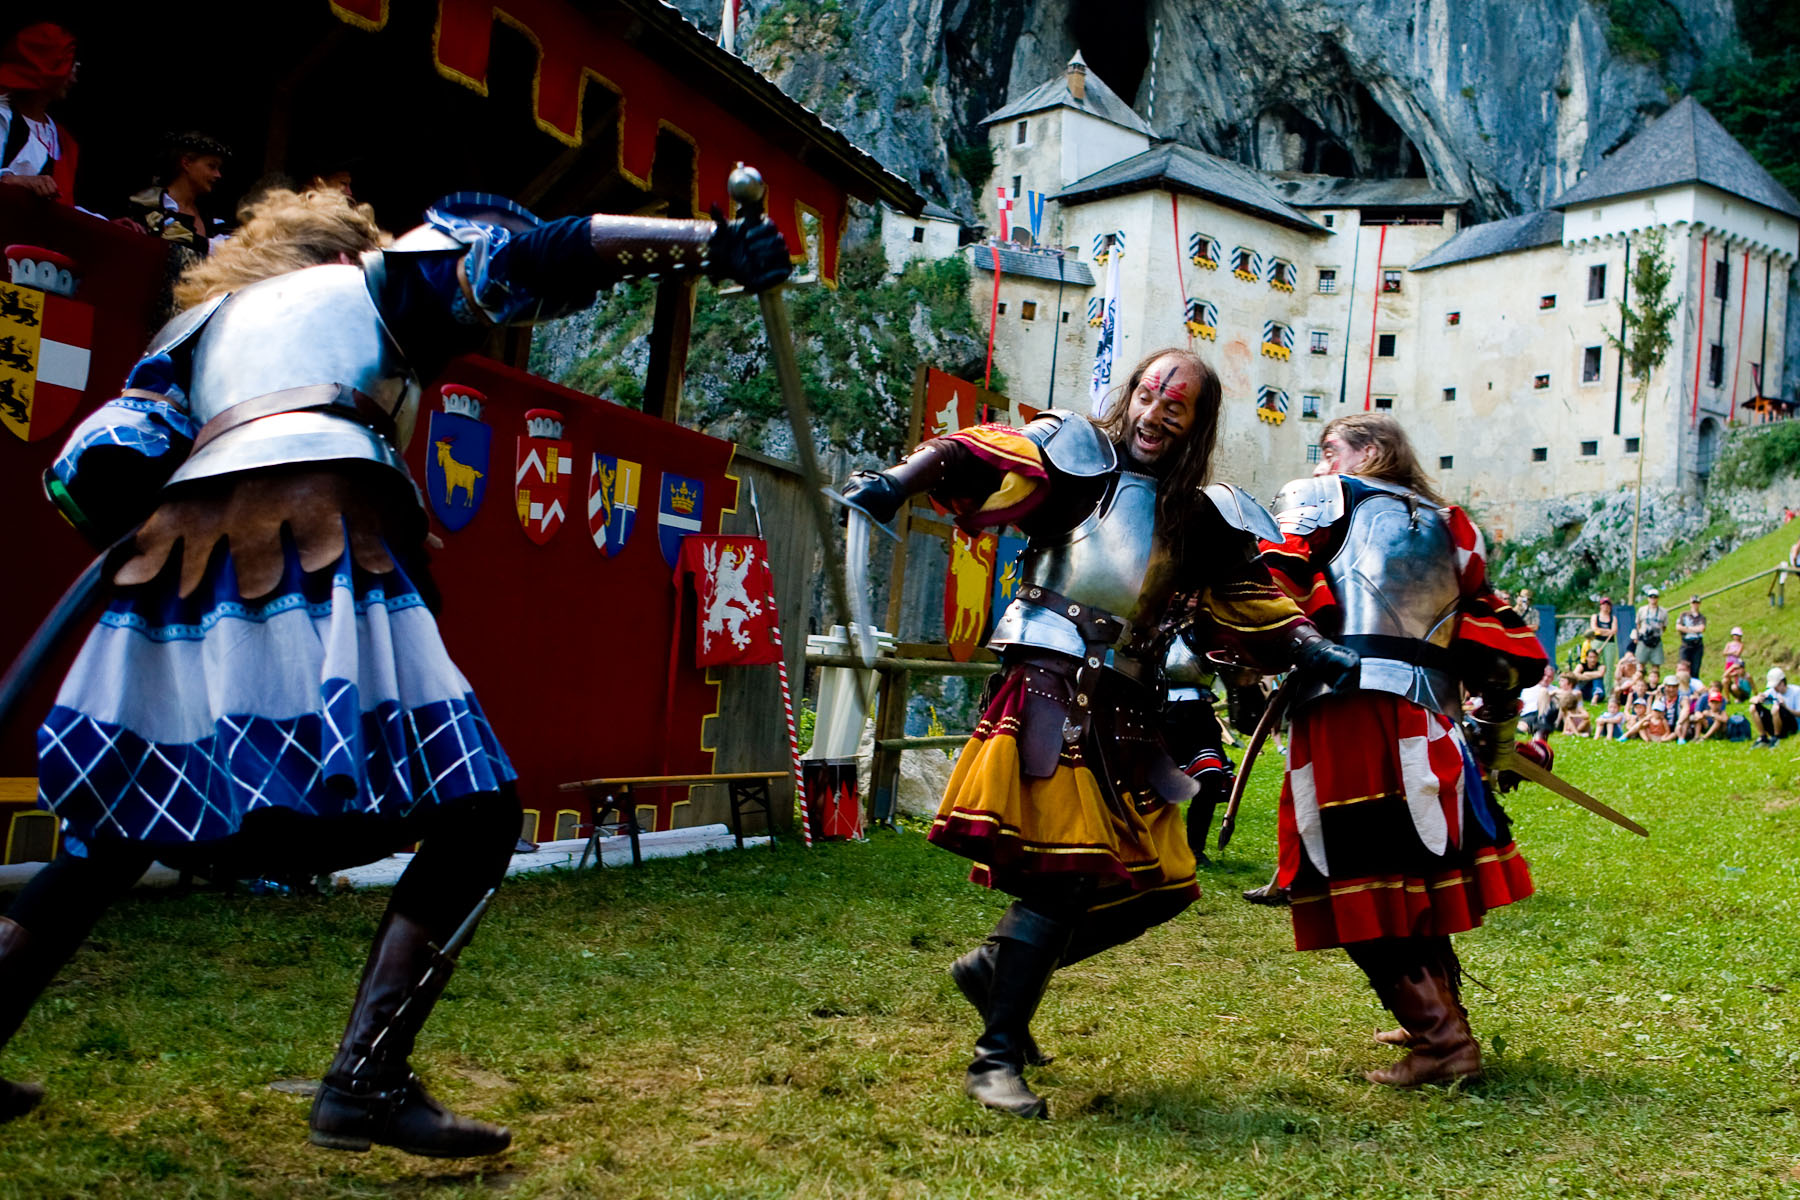 Czech knight group performs at the Erazem's Knight Tournament in Predjama, Slovenia, on July 27, 2008.